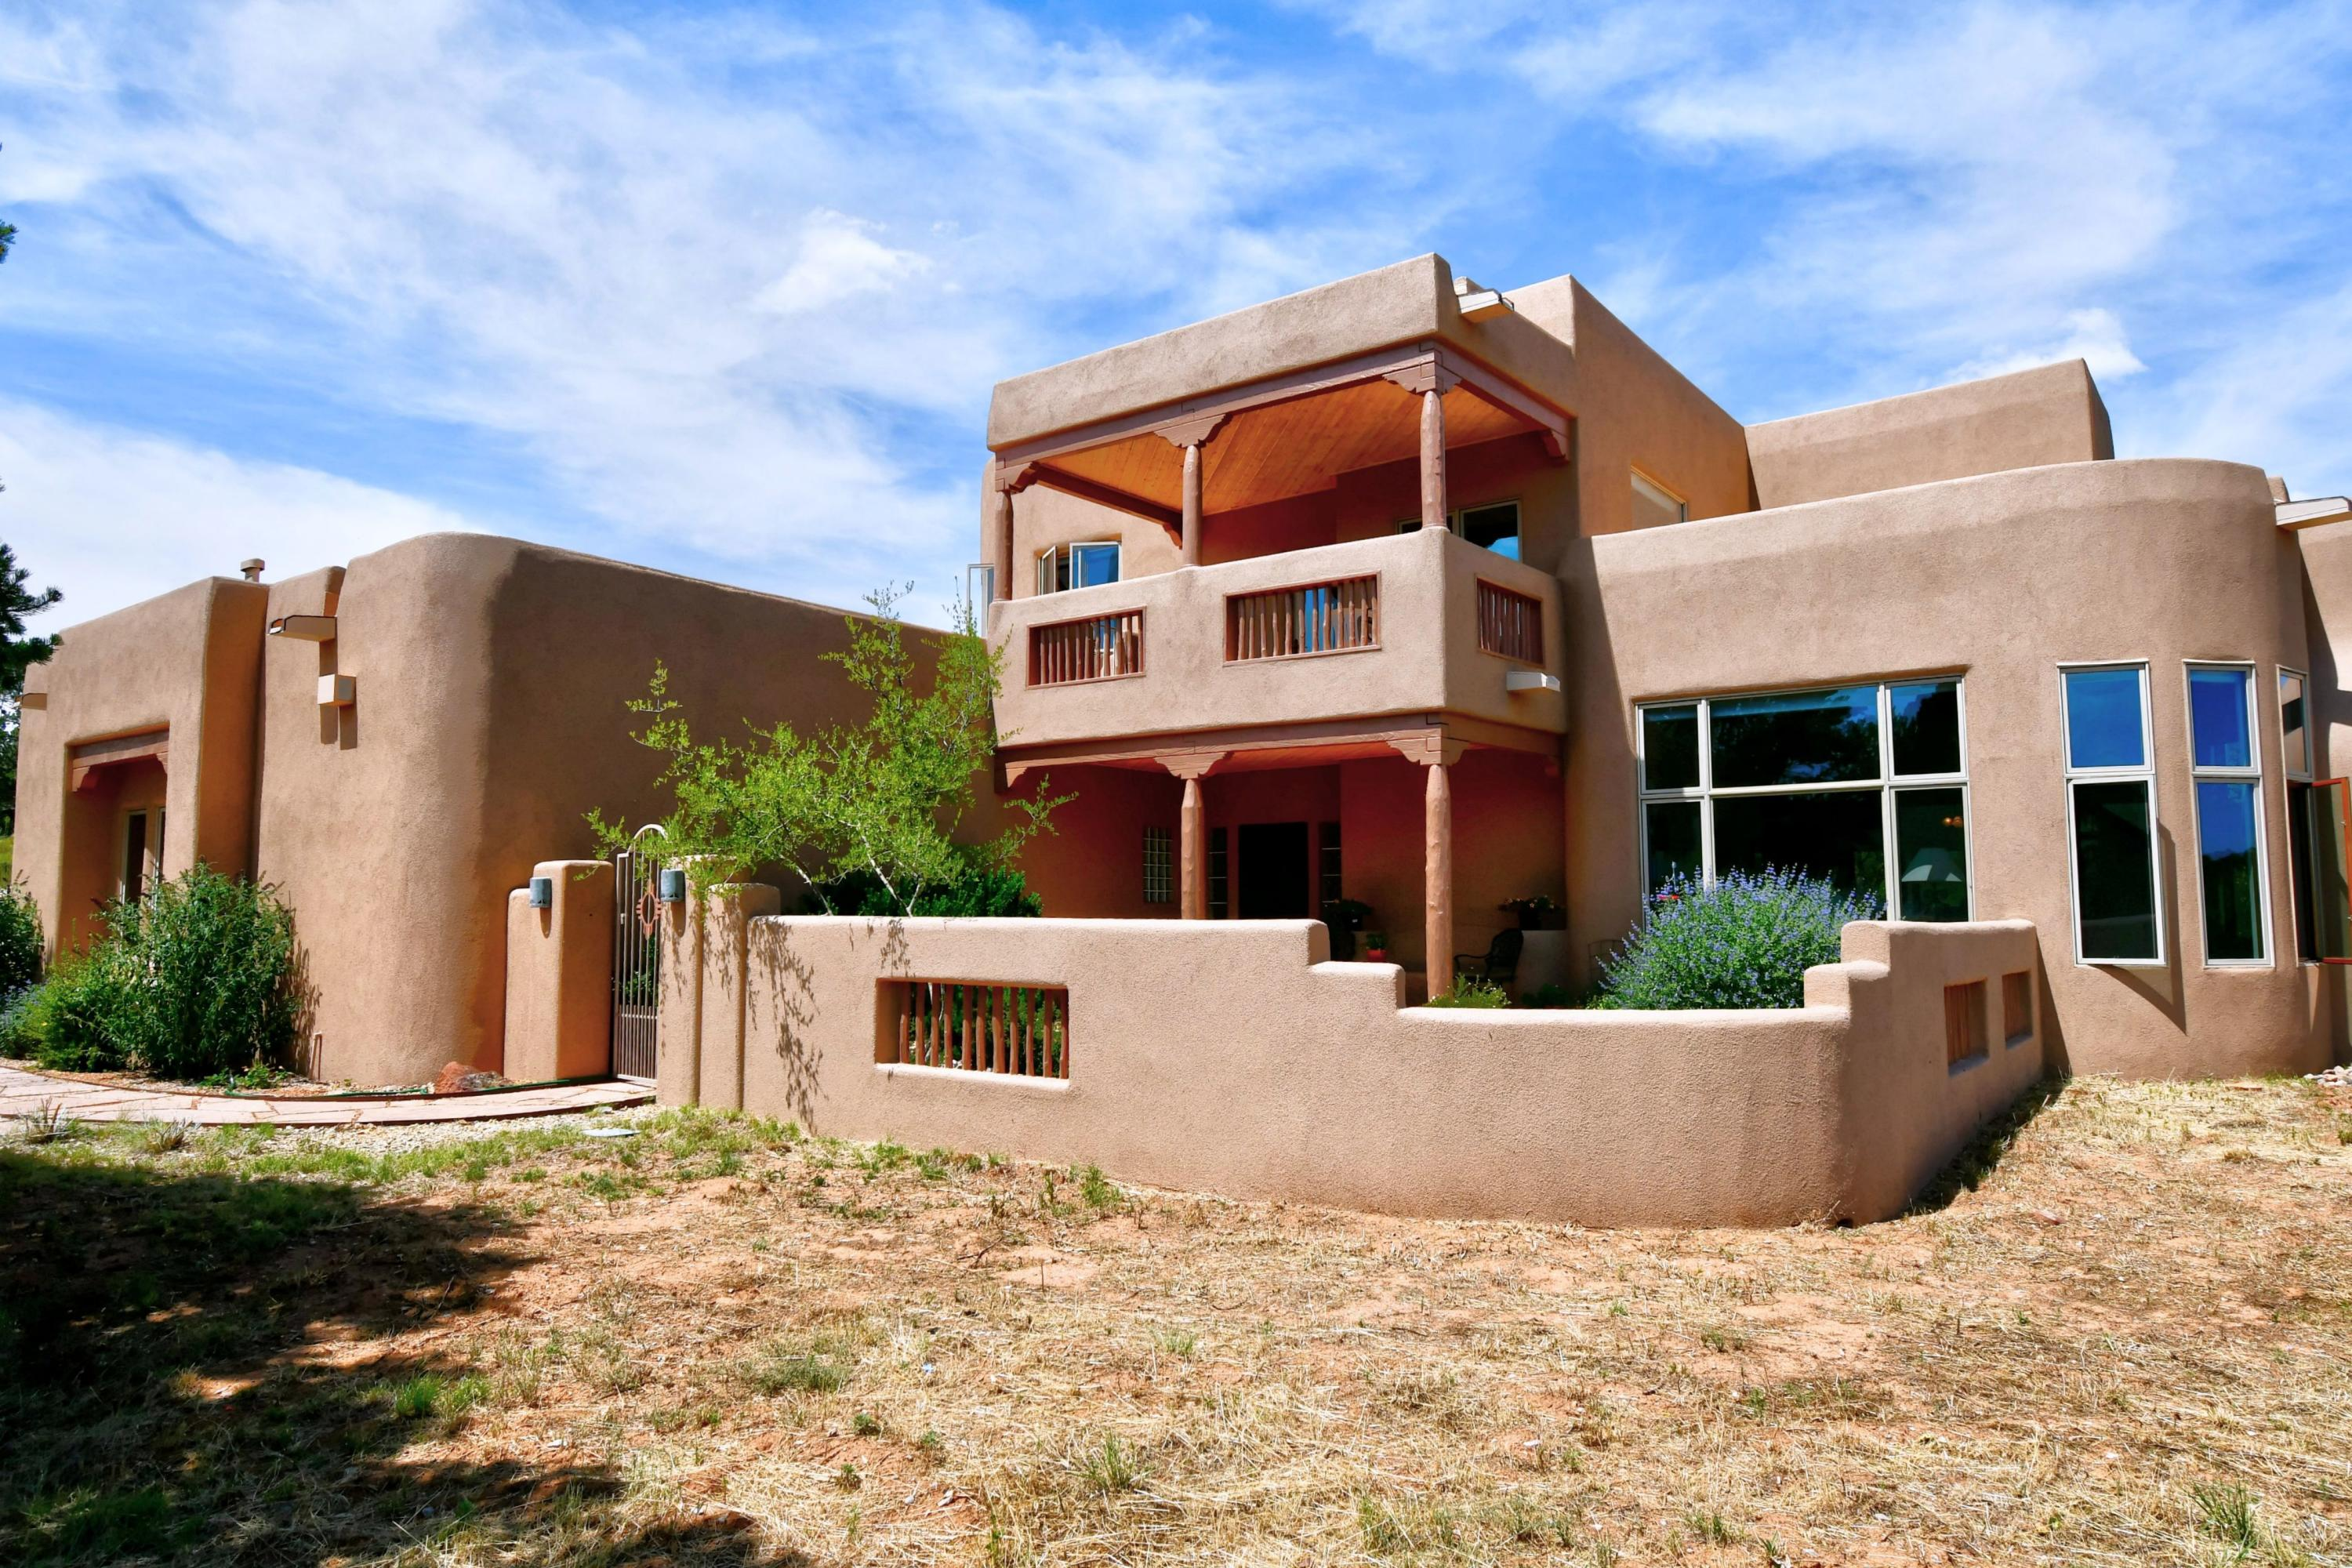 85 KIVA Loop Property Photo - Sandia Park, NM real estate listing